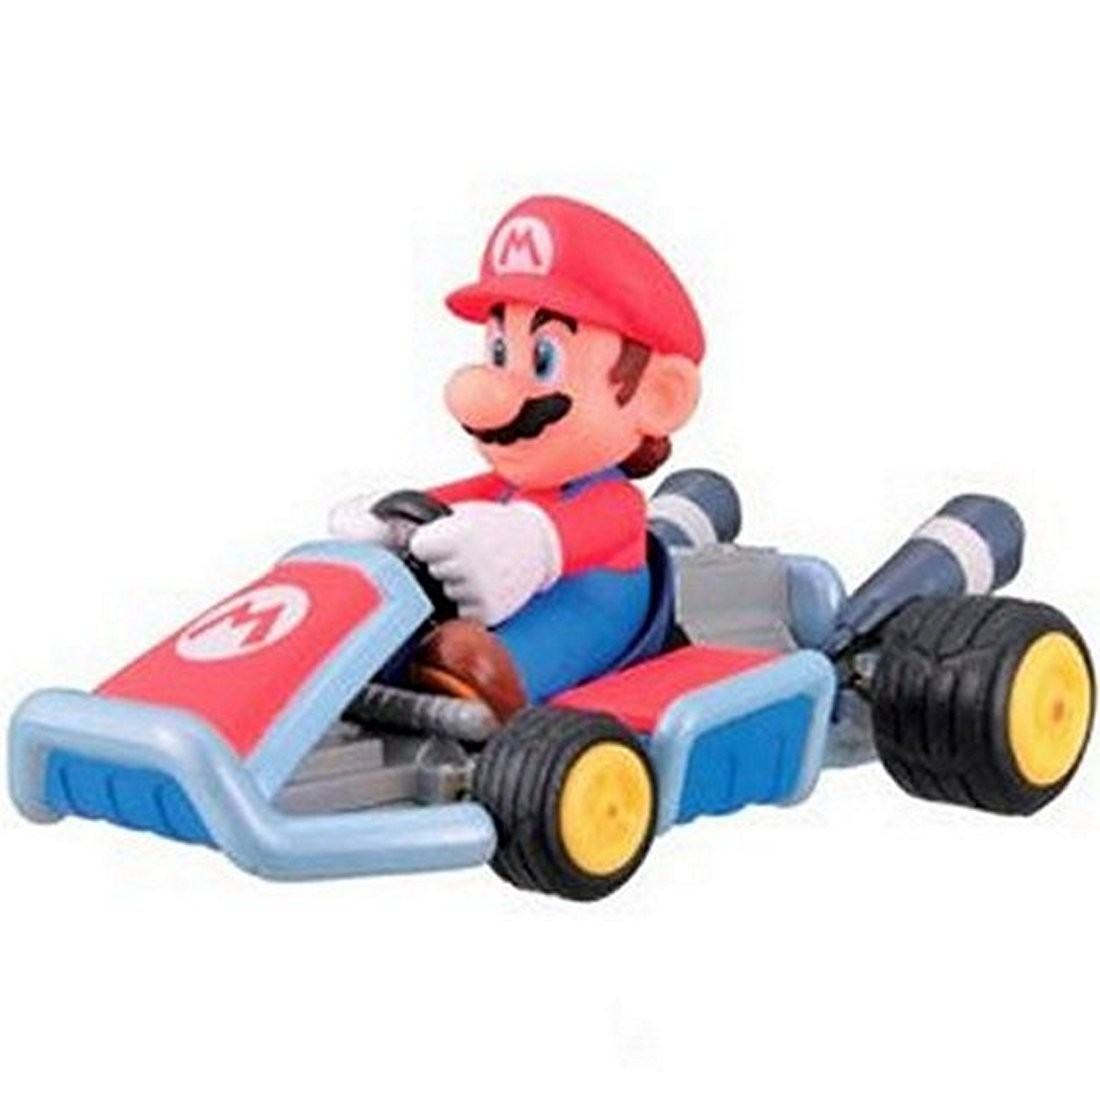 mario kart 7 pullback racer car figure collection 1 mario. Black Bedroom Furniture Sets. Home Design Ideas